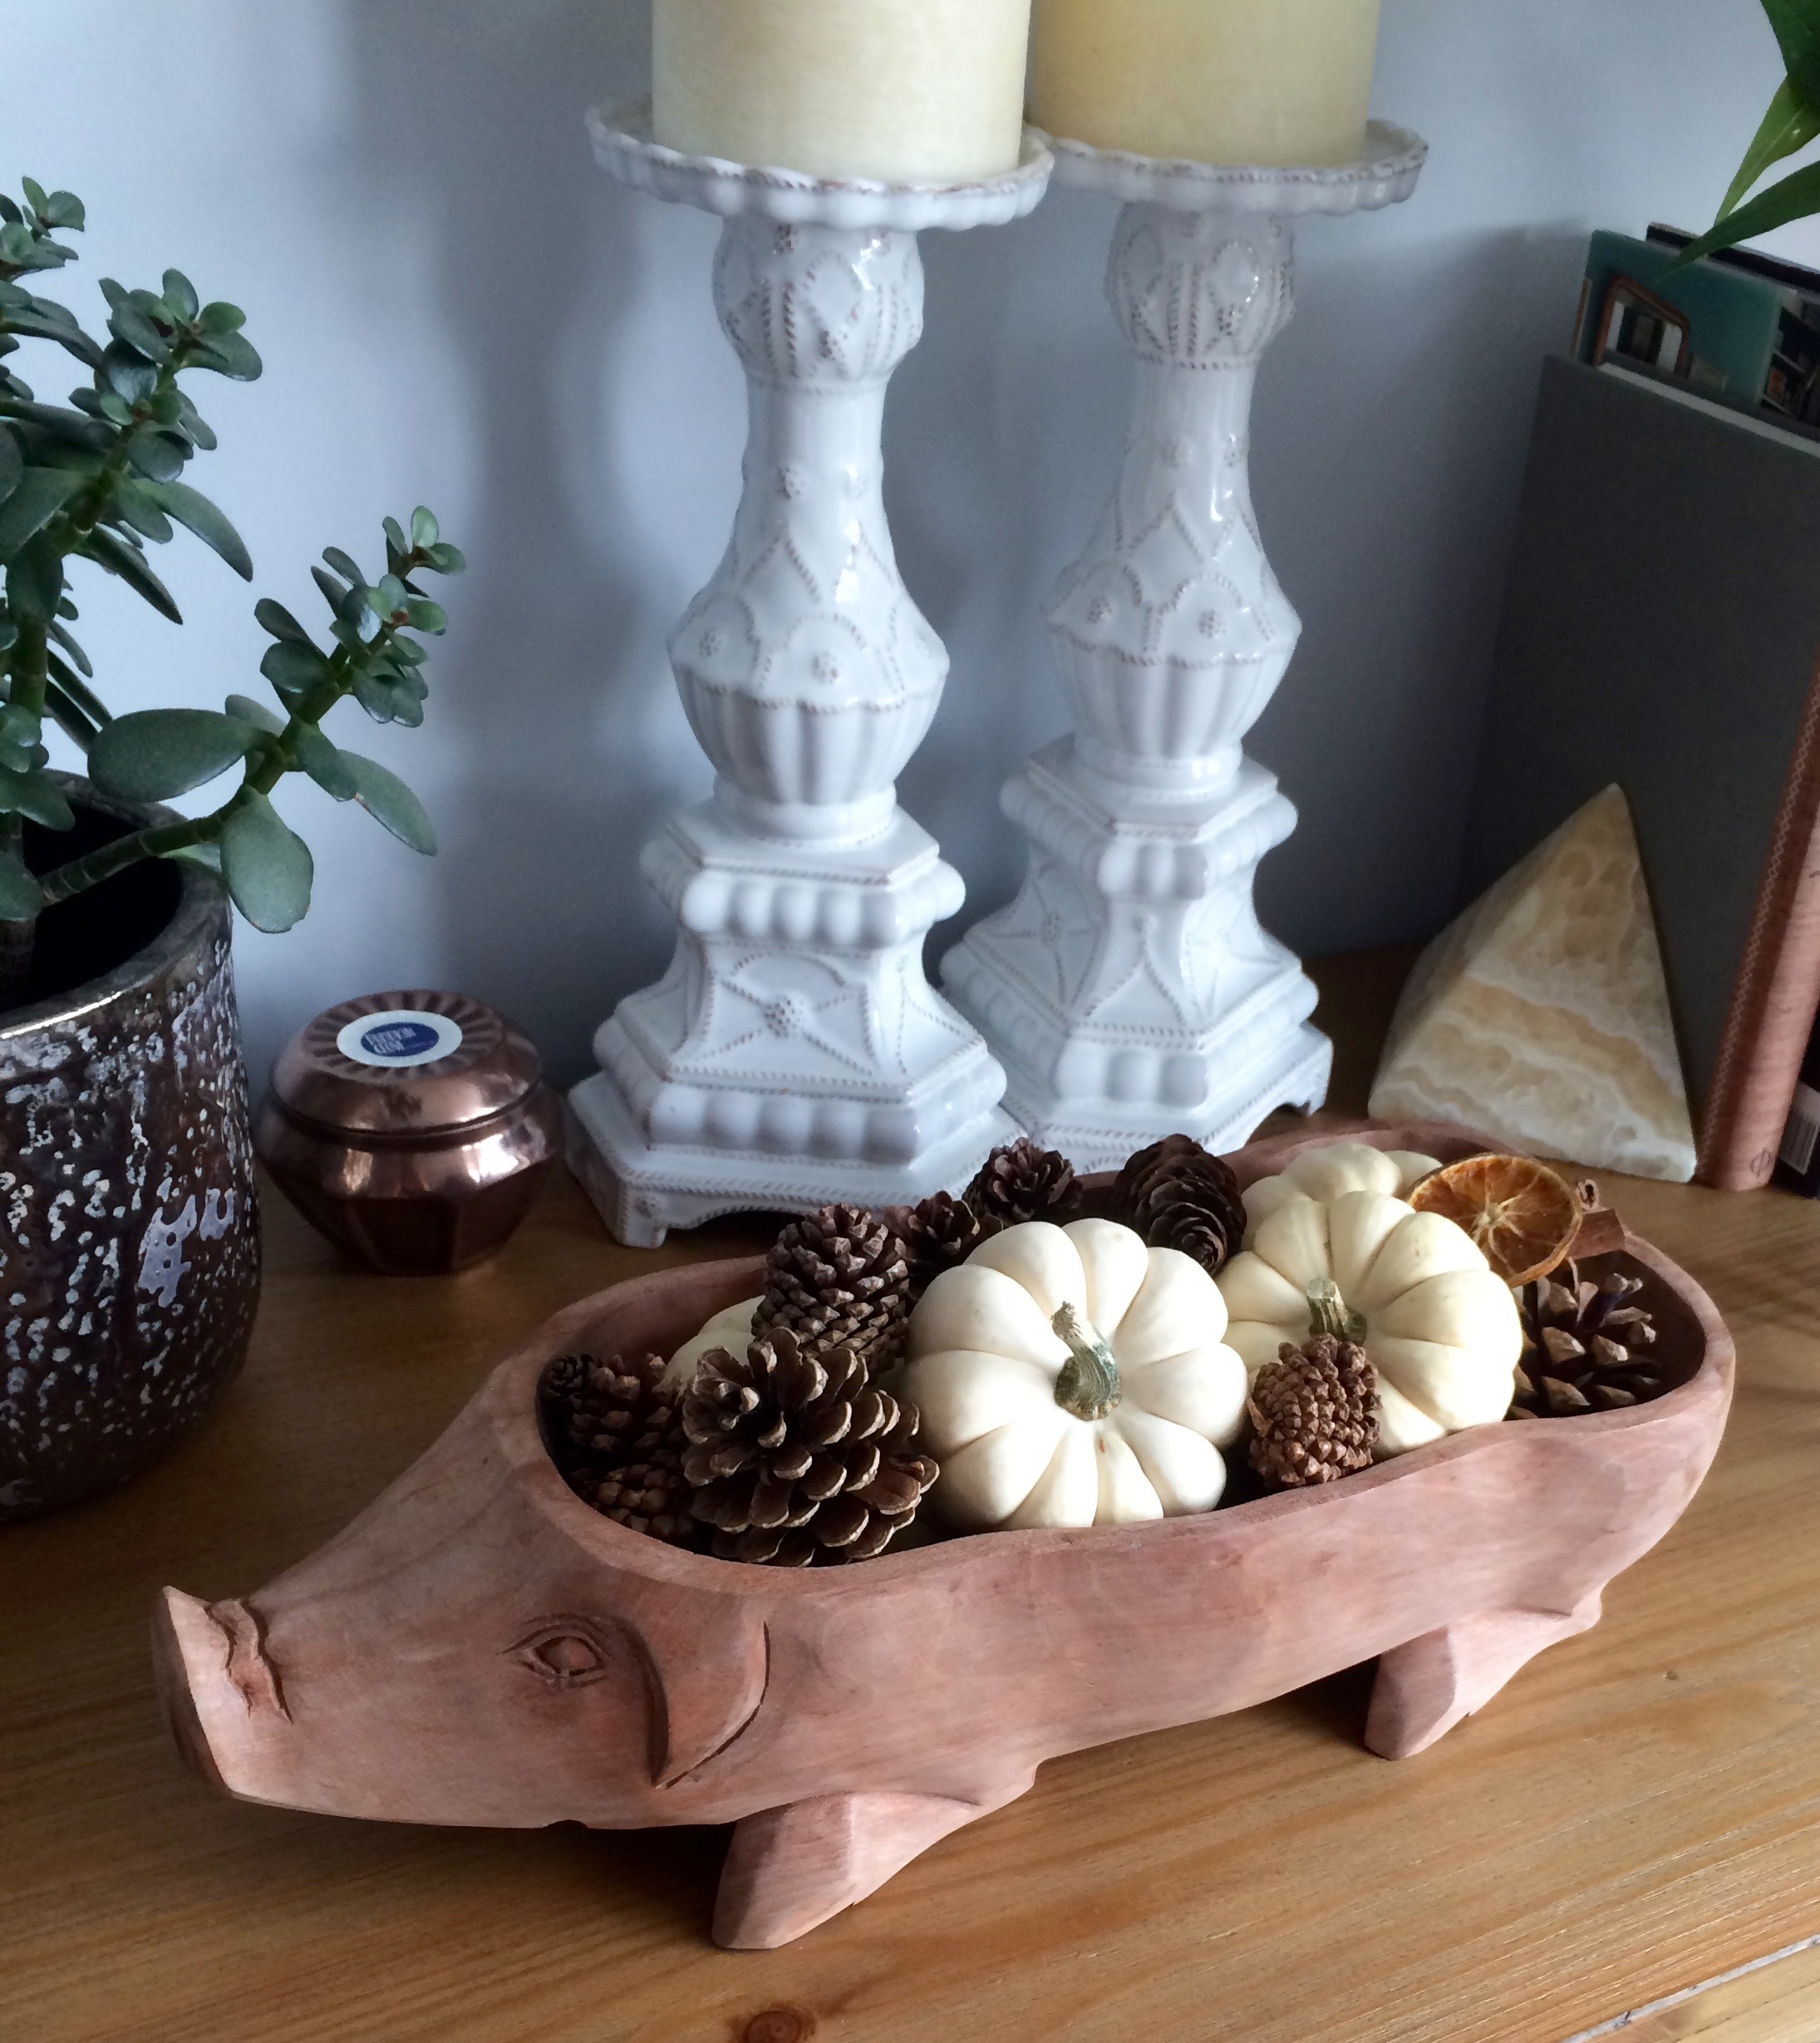 Pinecones, white pumpkins, and dried oranges on our sideboard.